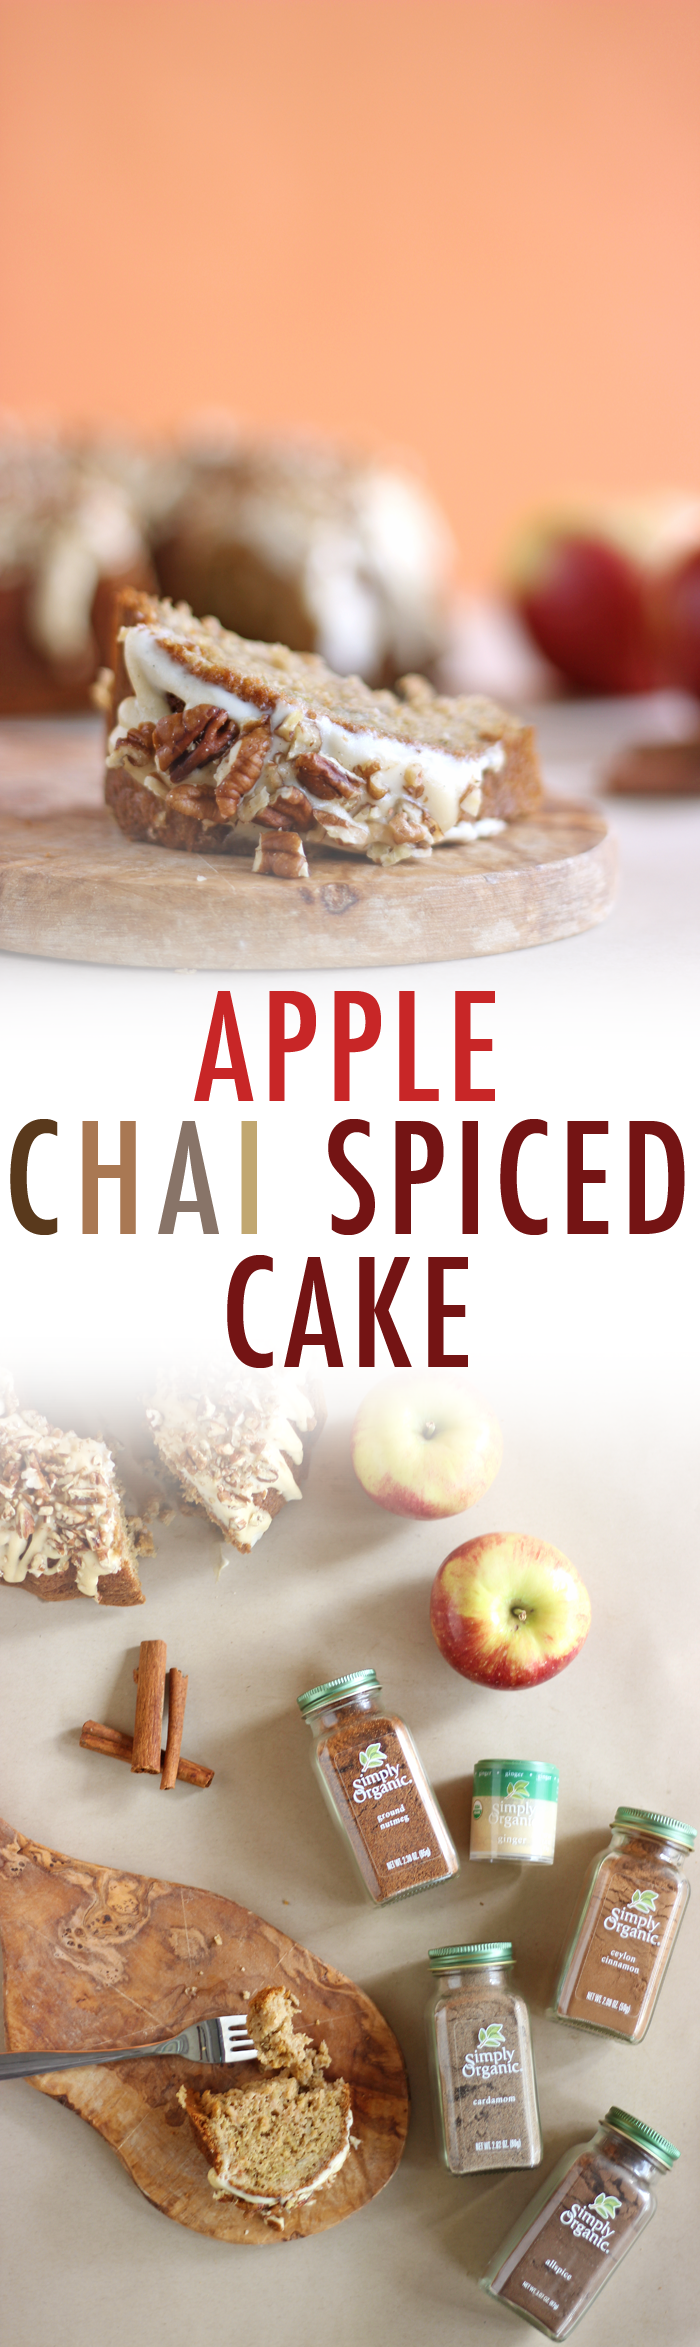 BEST APPLE CHAI CAKE EVER!! A healthy Apple Chai Spiced Cake made with the perfect blend of warming organic spices and topped with a dairy free maple glaze drizzle.